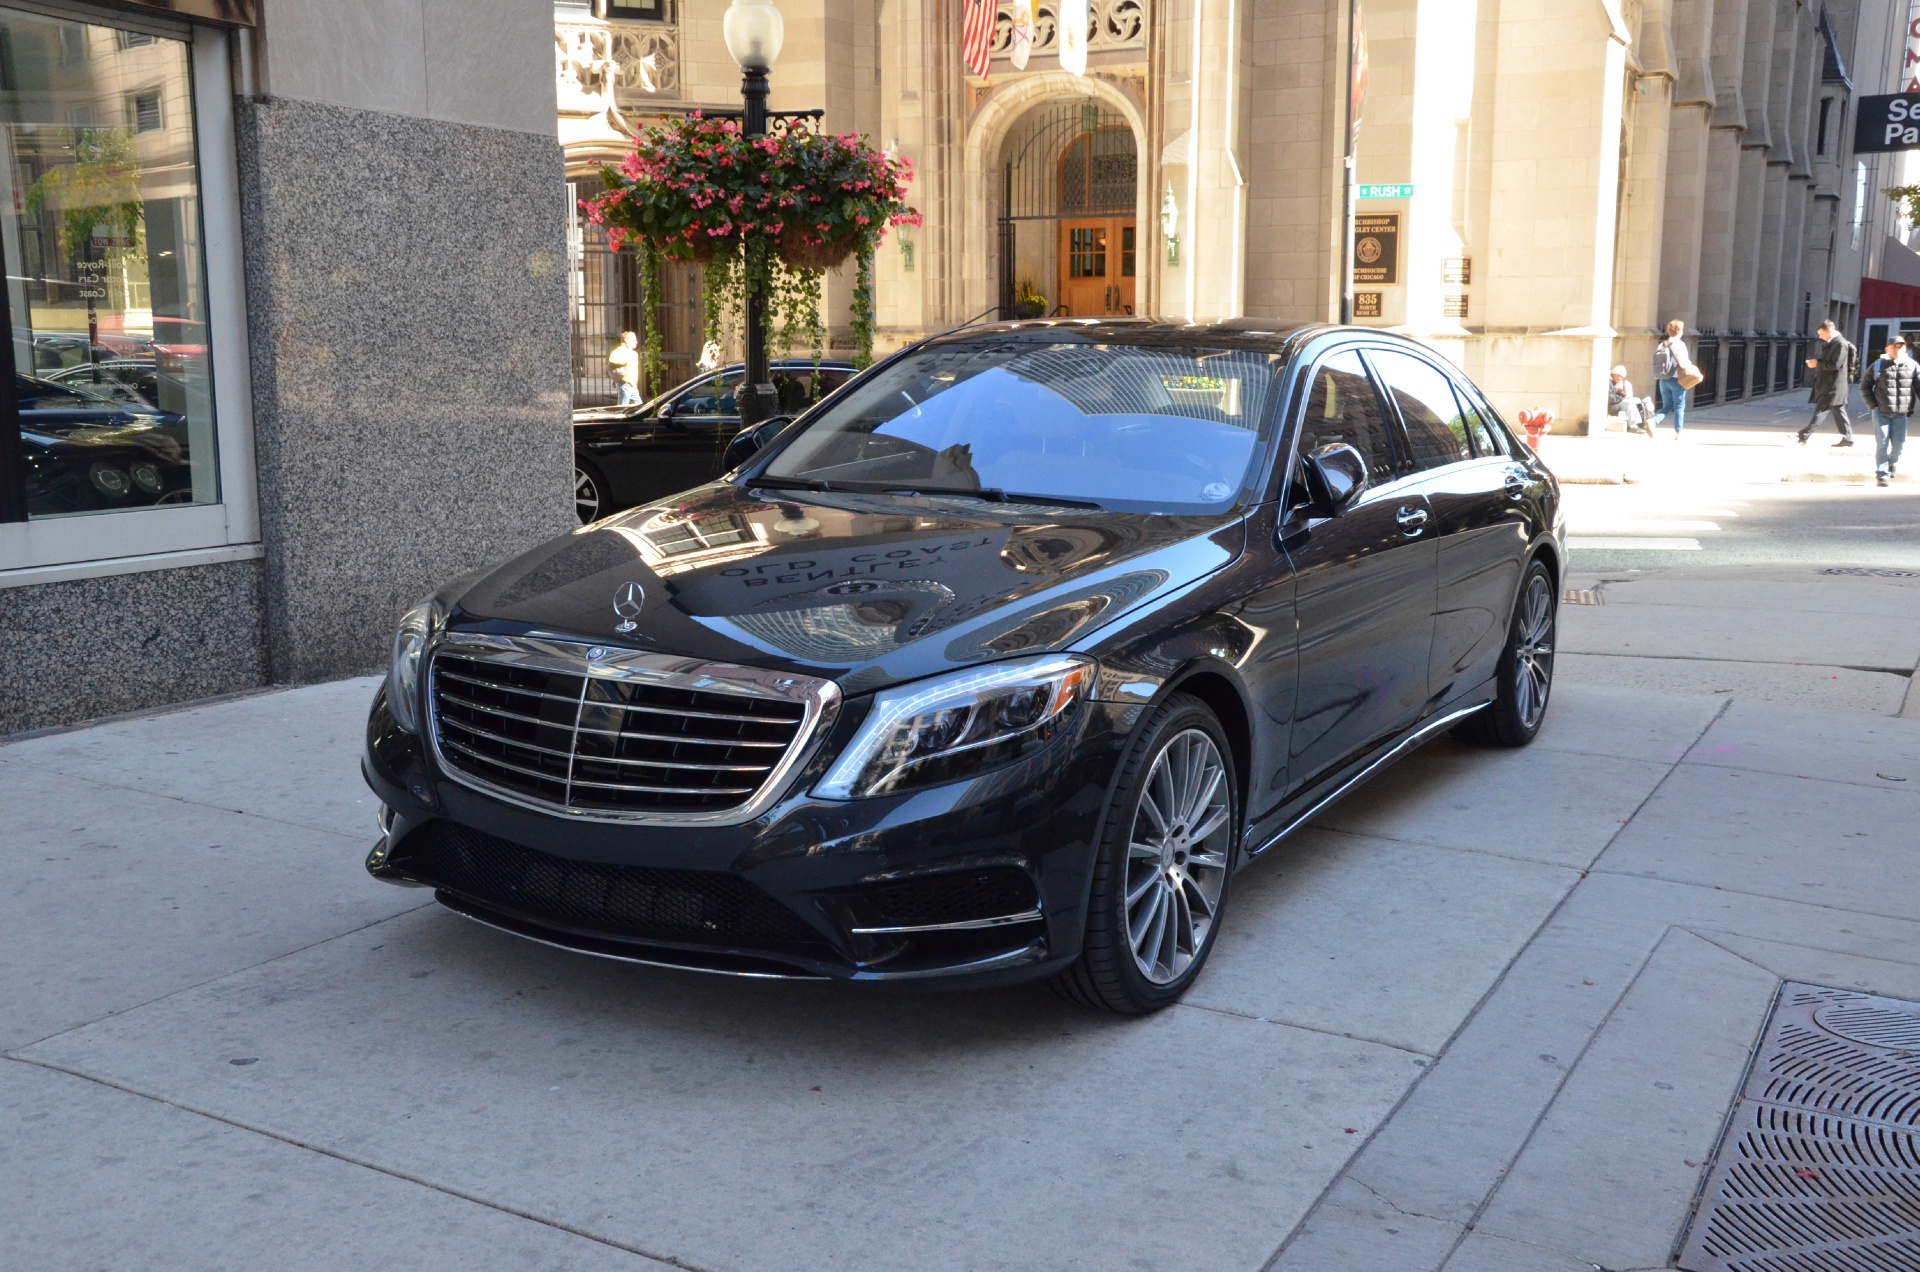 2015 mercedes benz s class s550 stock r161a for sale for Mercedes benz s550 for sale